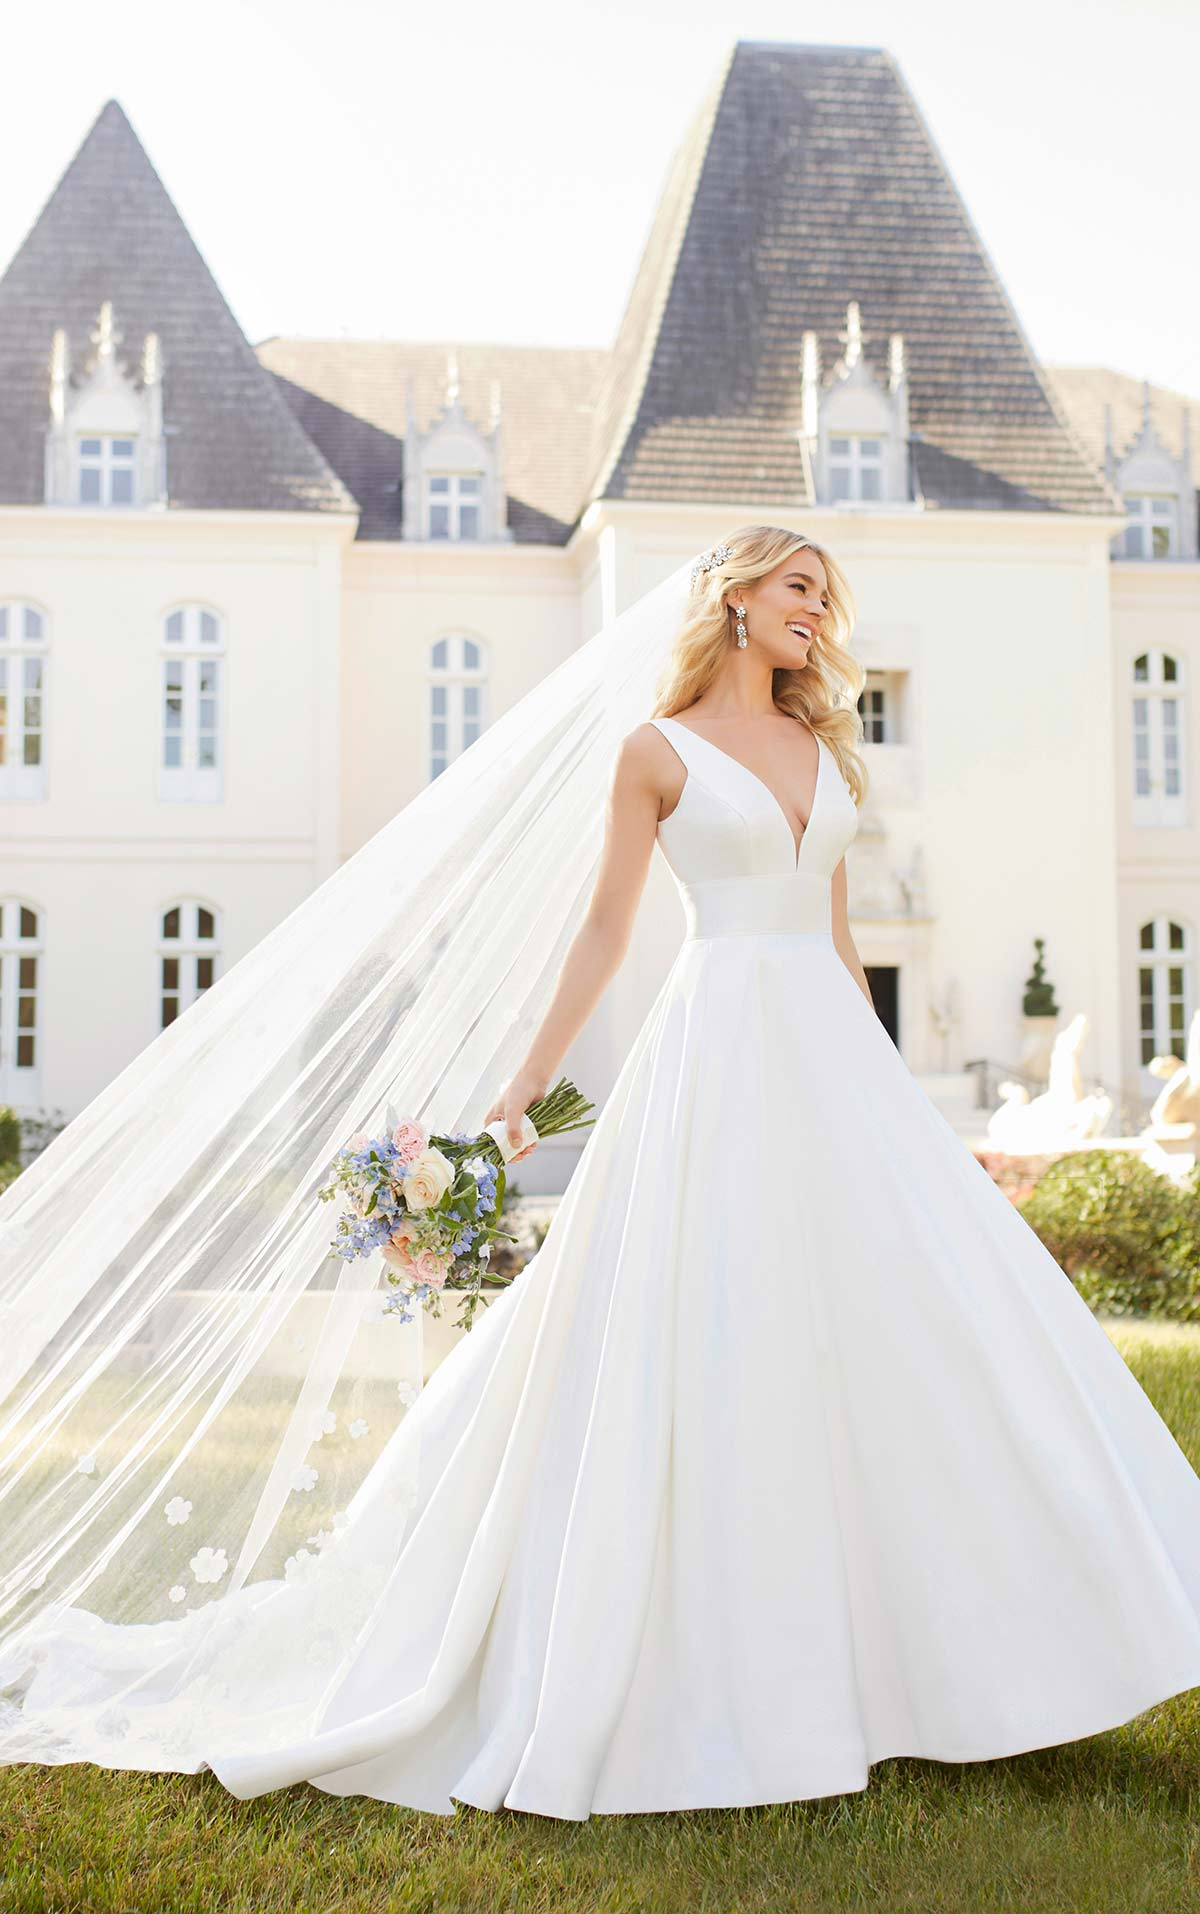 The Most Popular Wedding Dress Styles of 2021